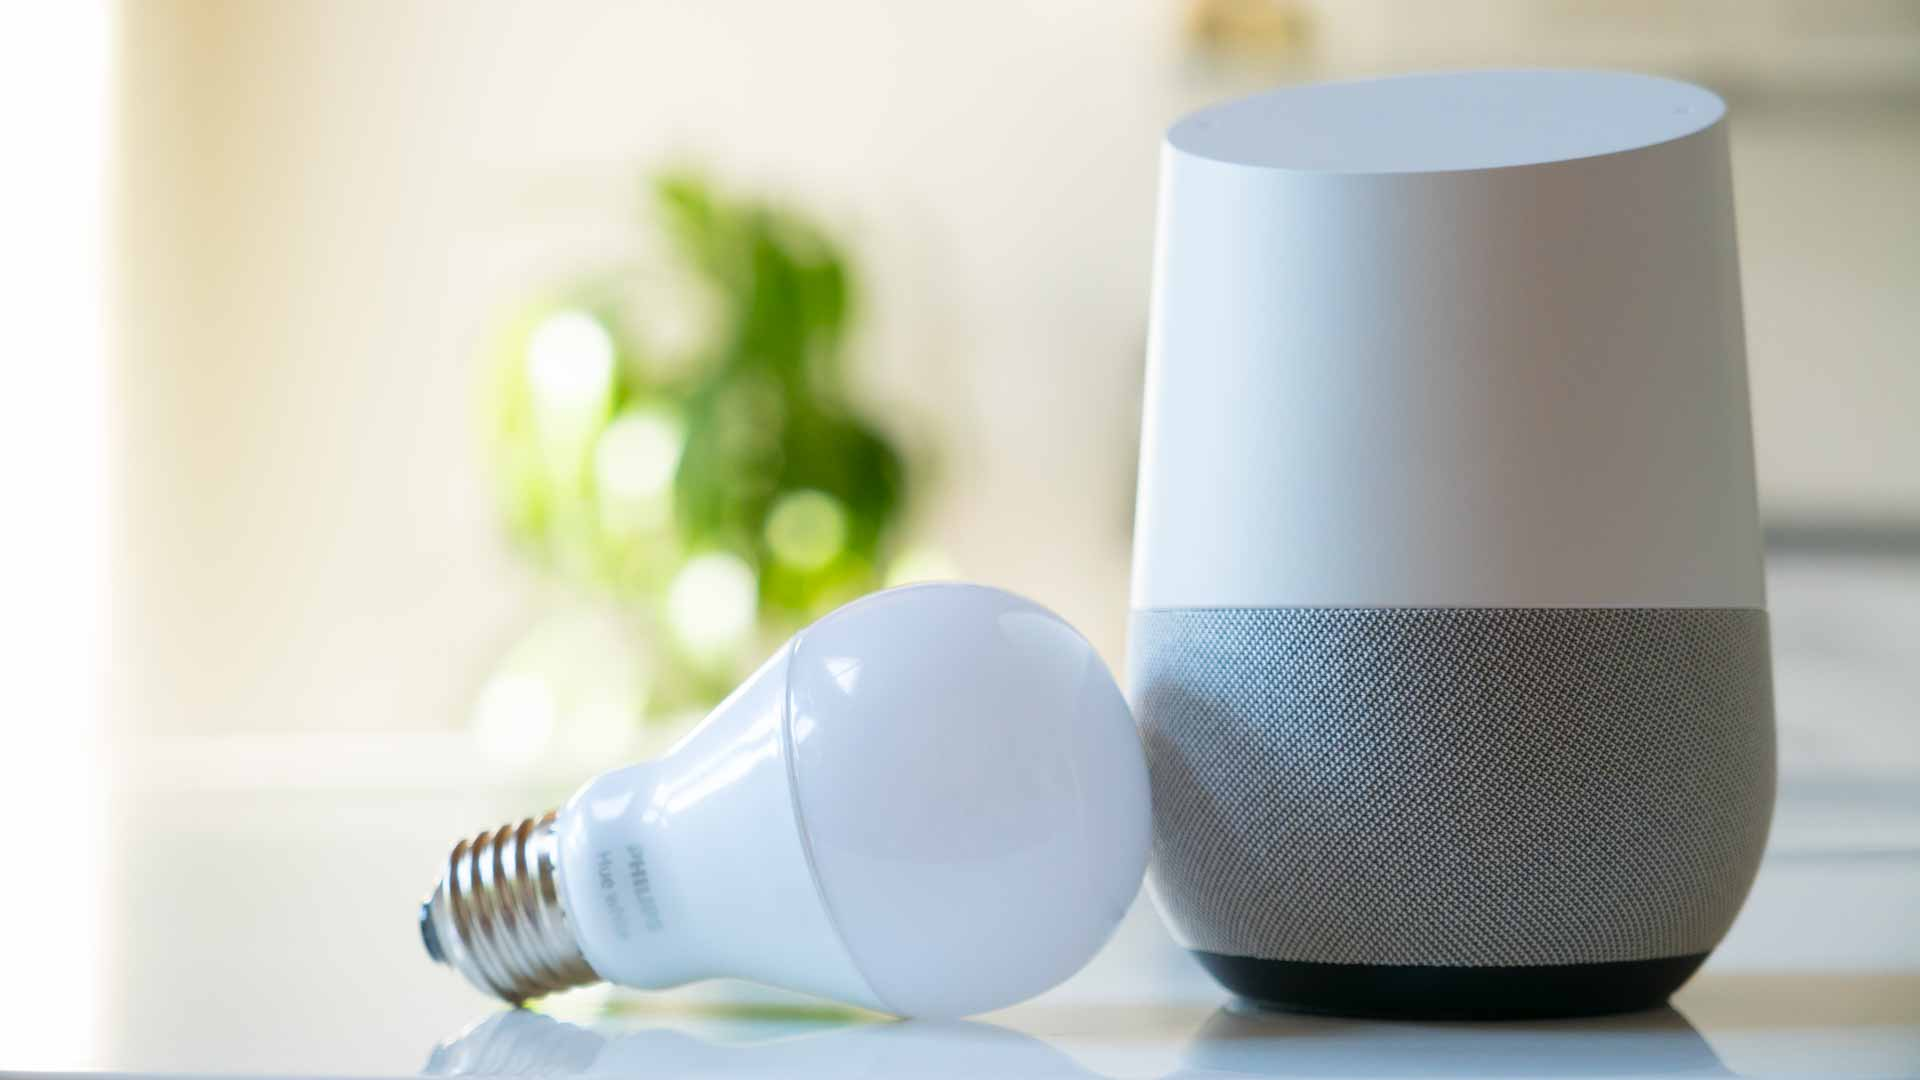 google home jetzt mit raumerkennung zur lichtsteuerung in deutschland smarthomeassistent. Black Bedroom Furniture Sets. Home Design Ideas